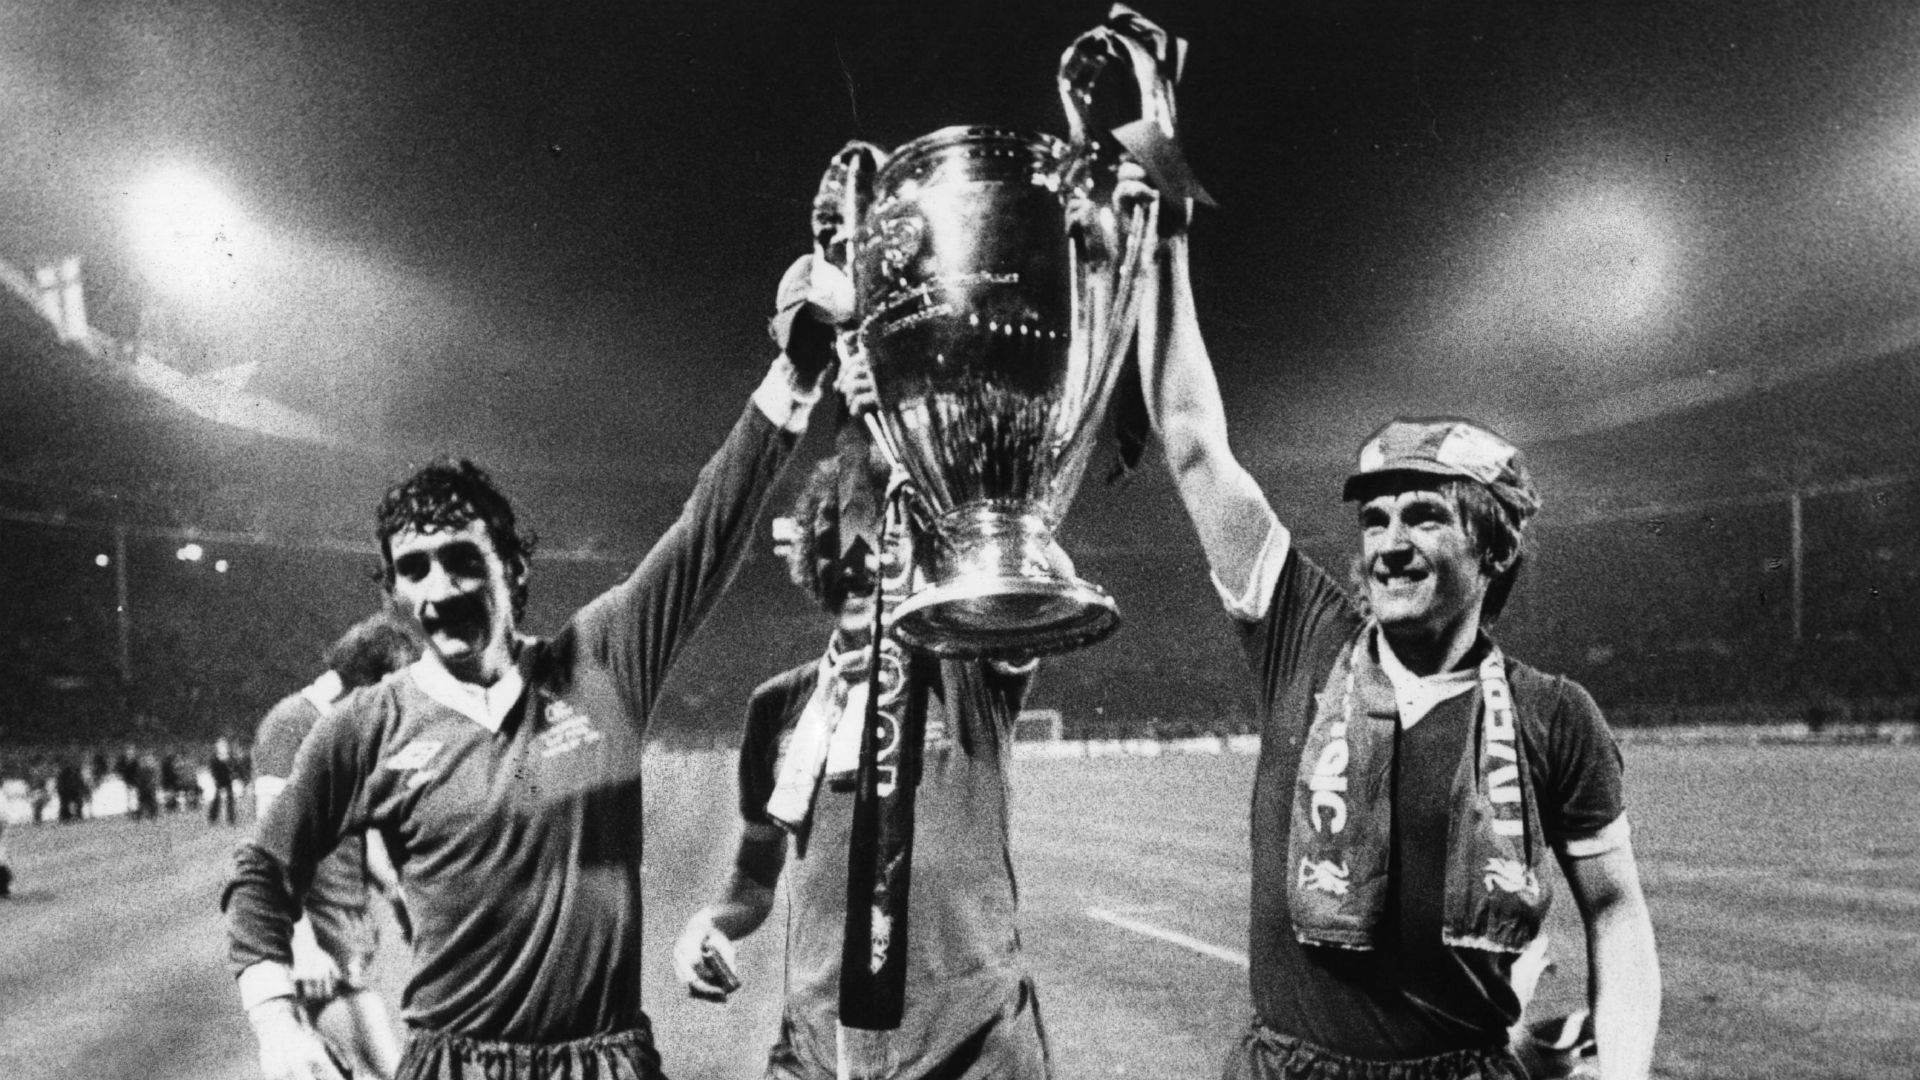 Terry McDermott Kenny Dalglish Liverpool European Cup 1978